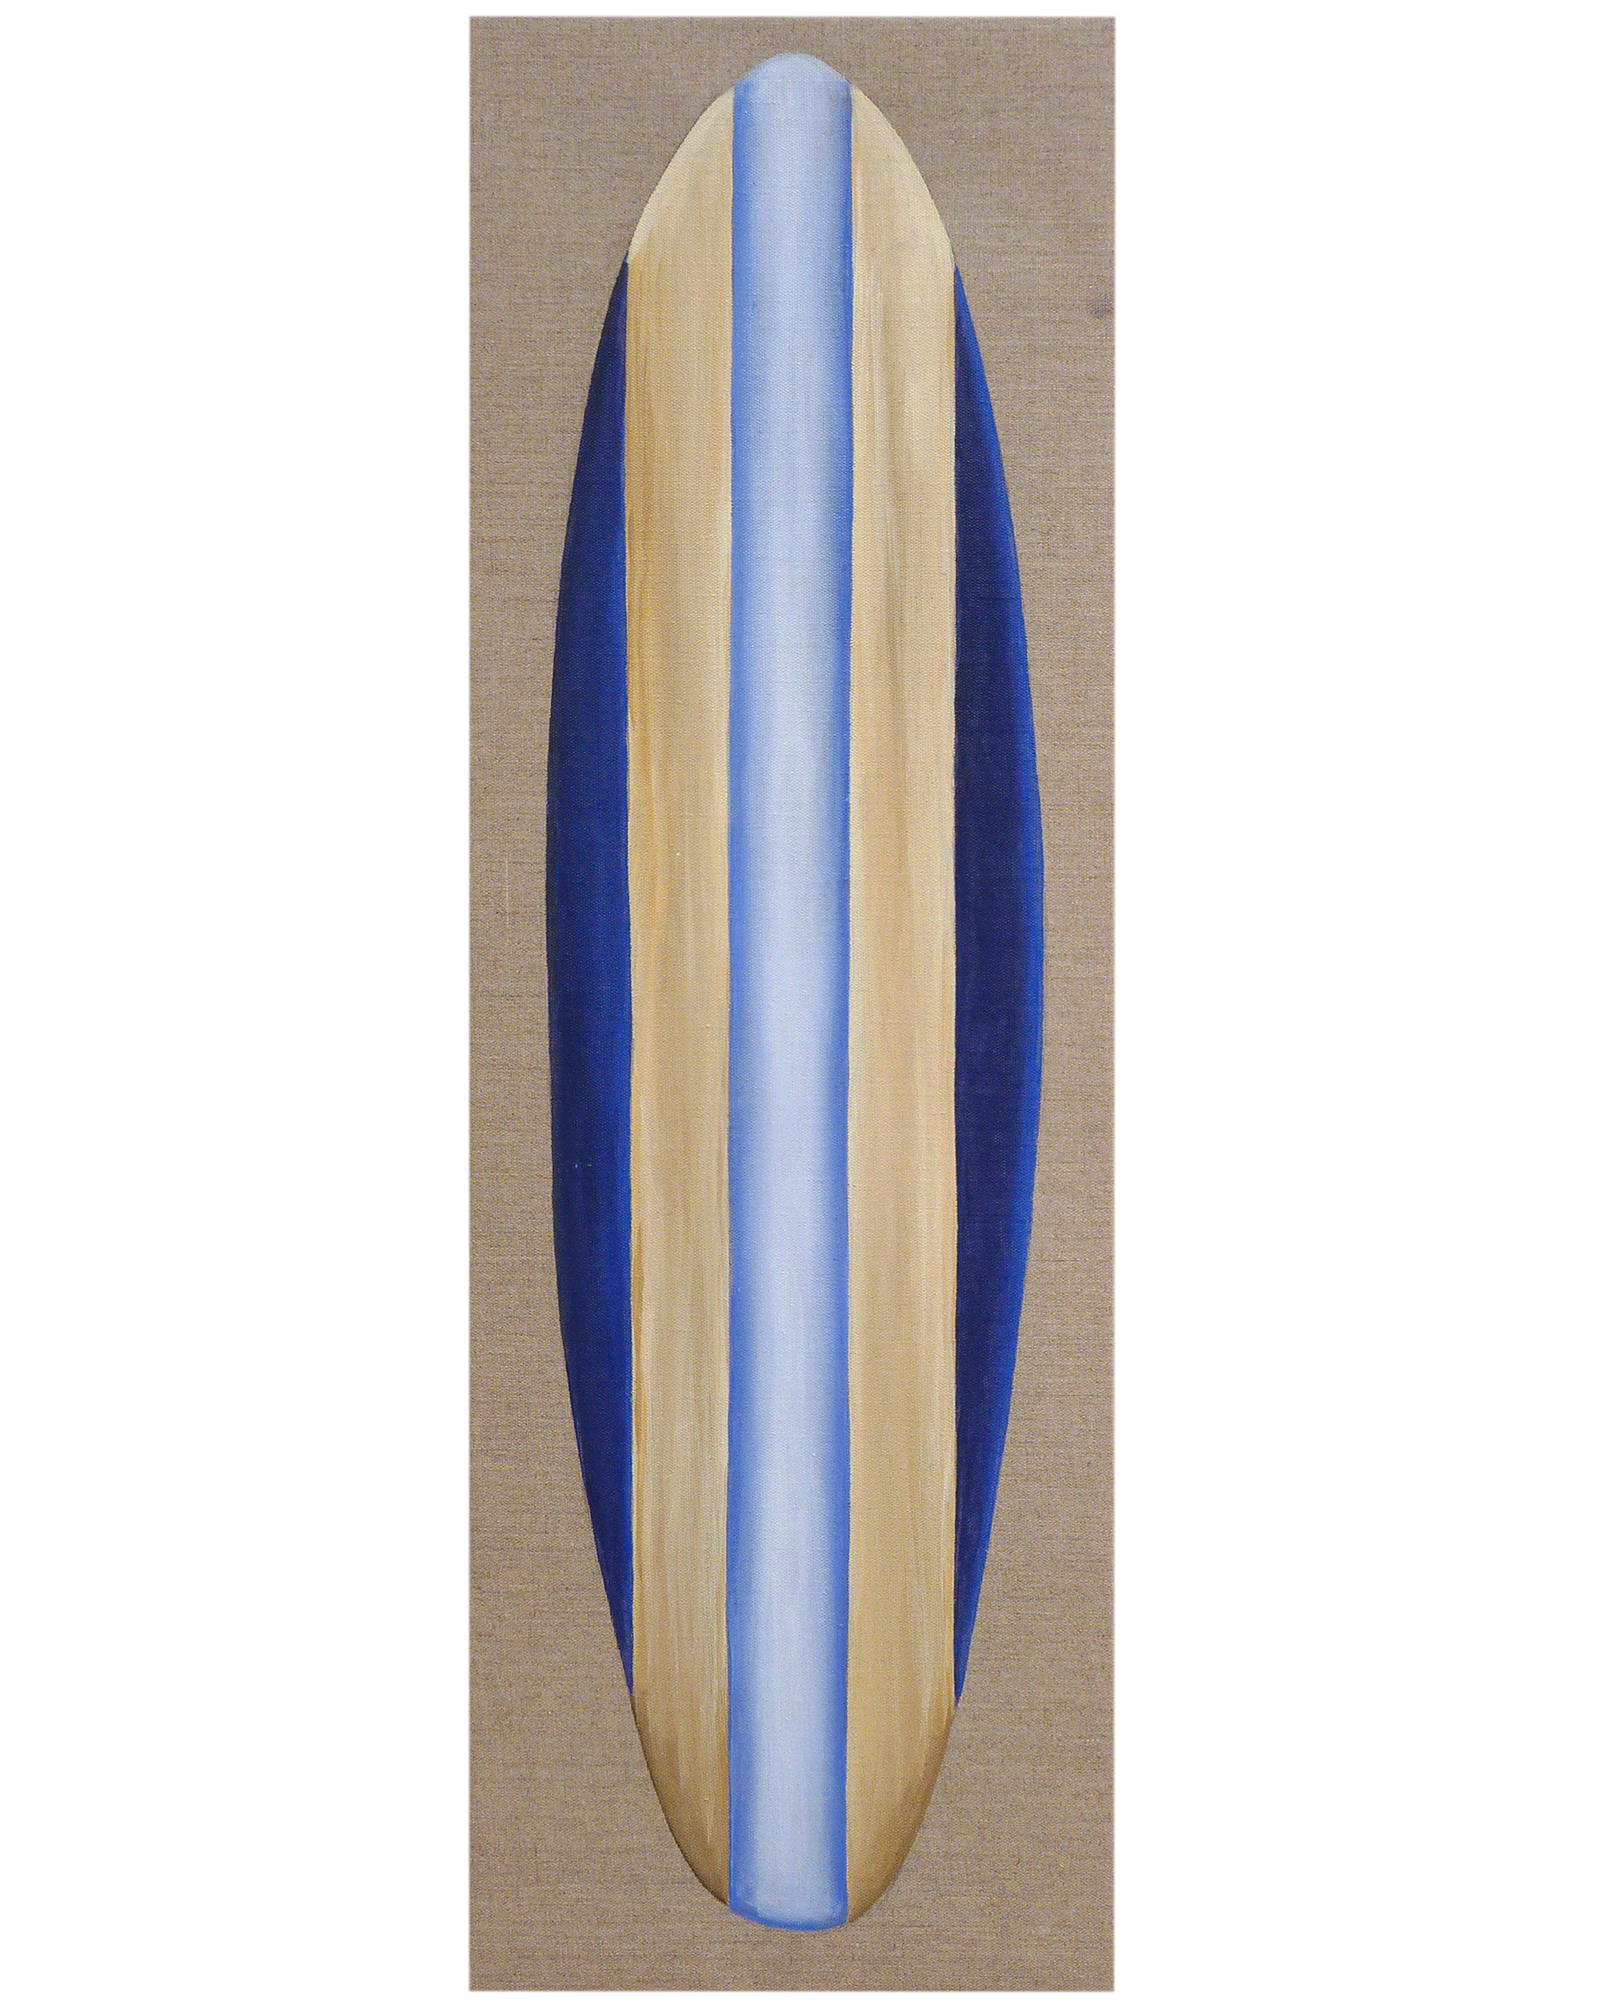 "Surfboard #12"" by Carol Saxe,"